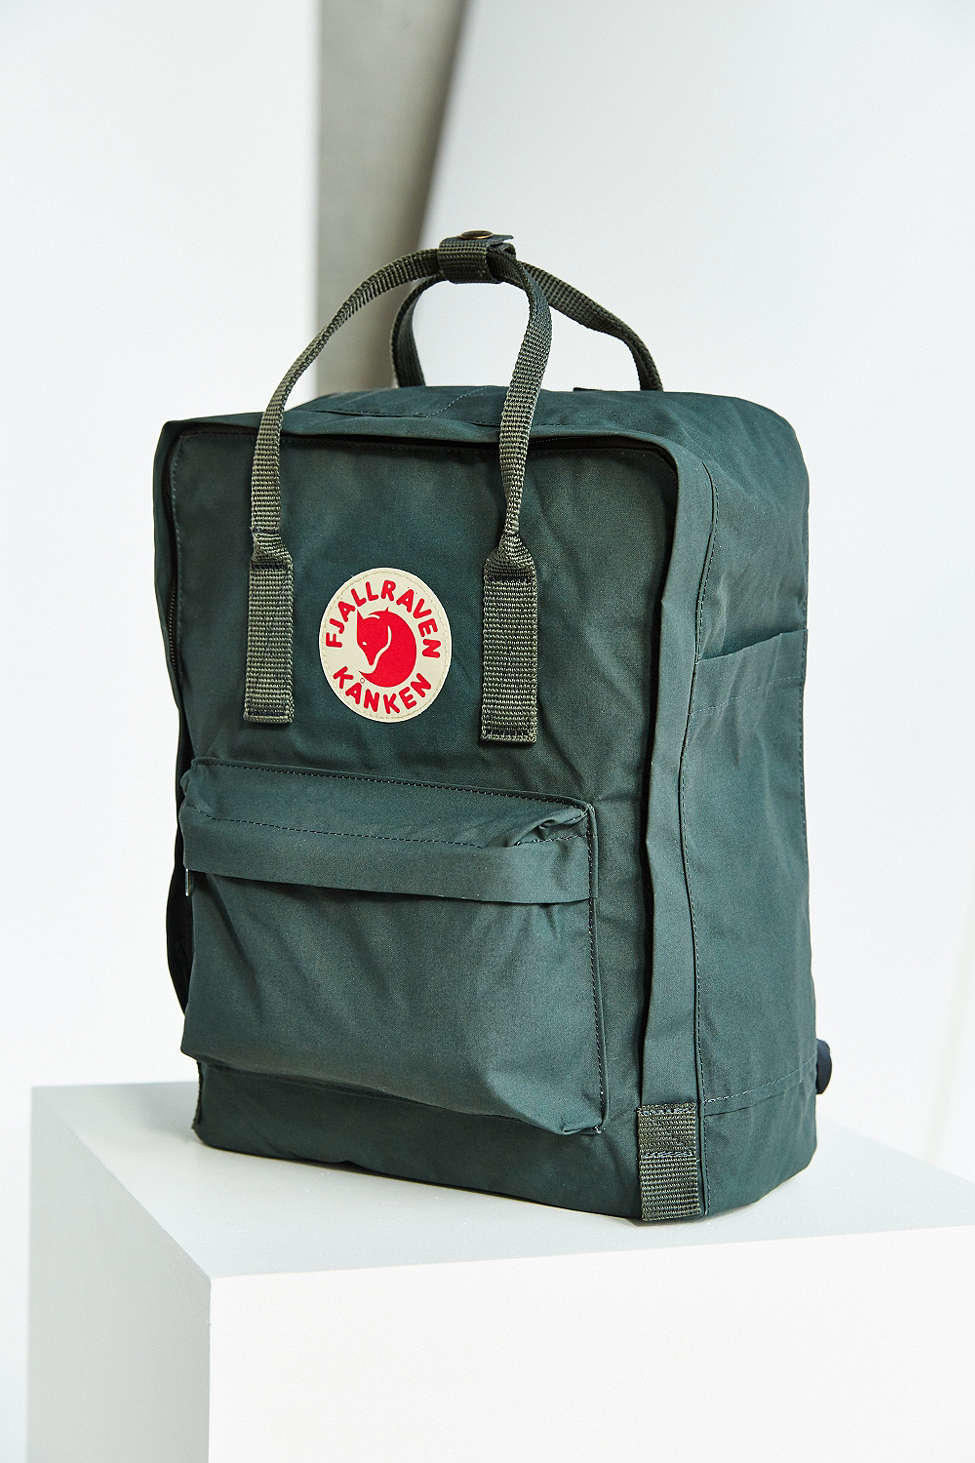 Fjallraven Kanken Backpack Urban From Urban Outfitters